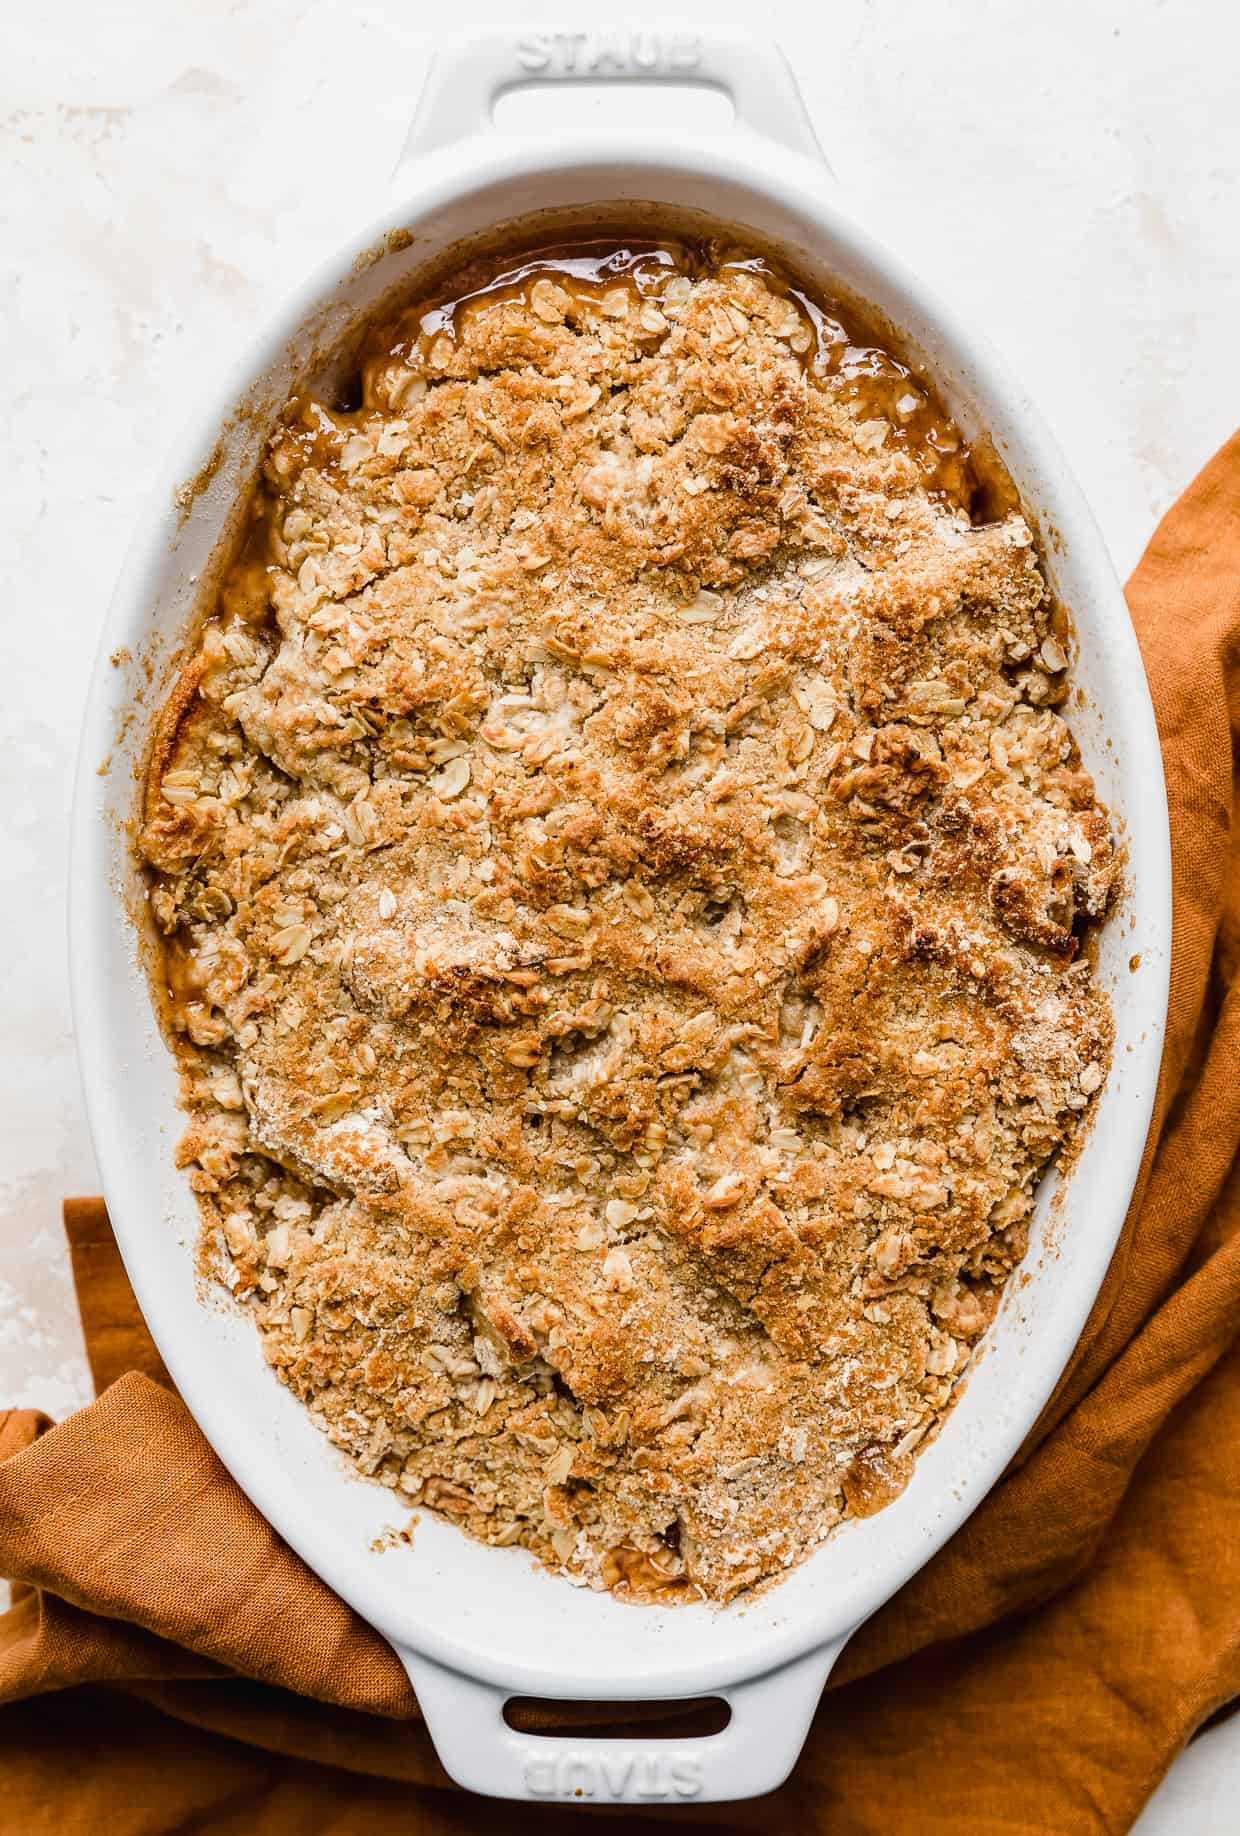 A golden brown baked Easy Apple Crisp Recipe on a white background.